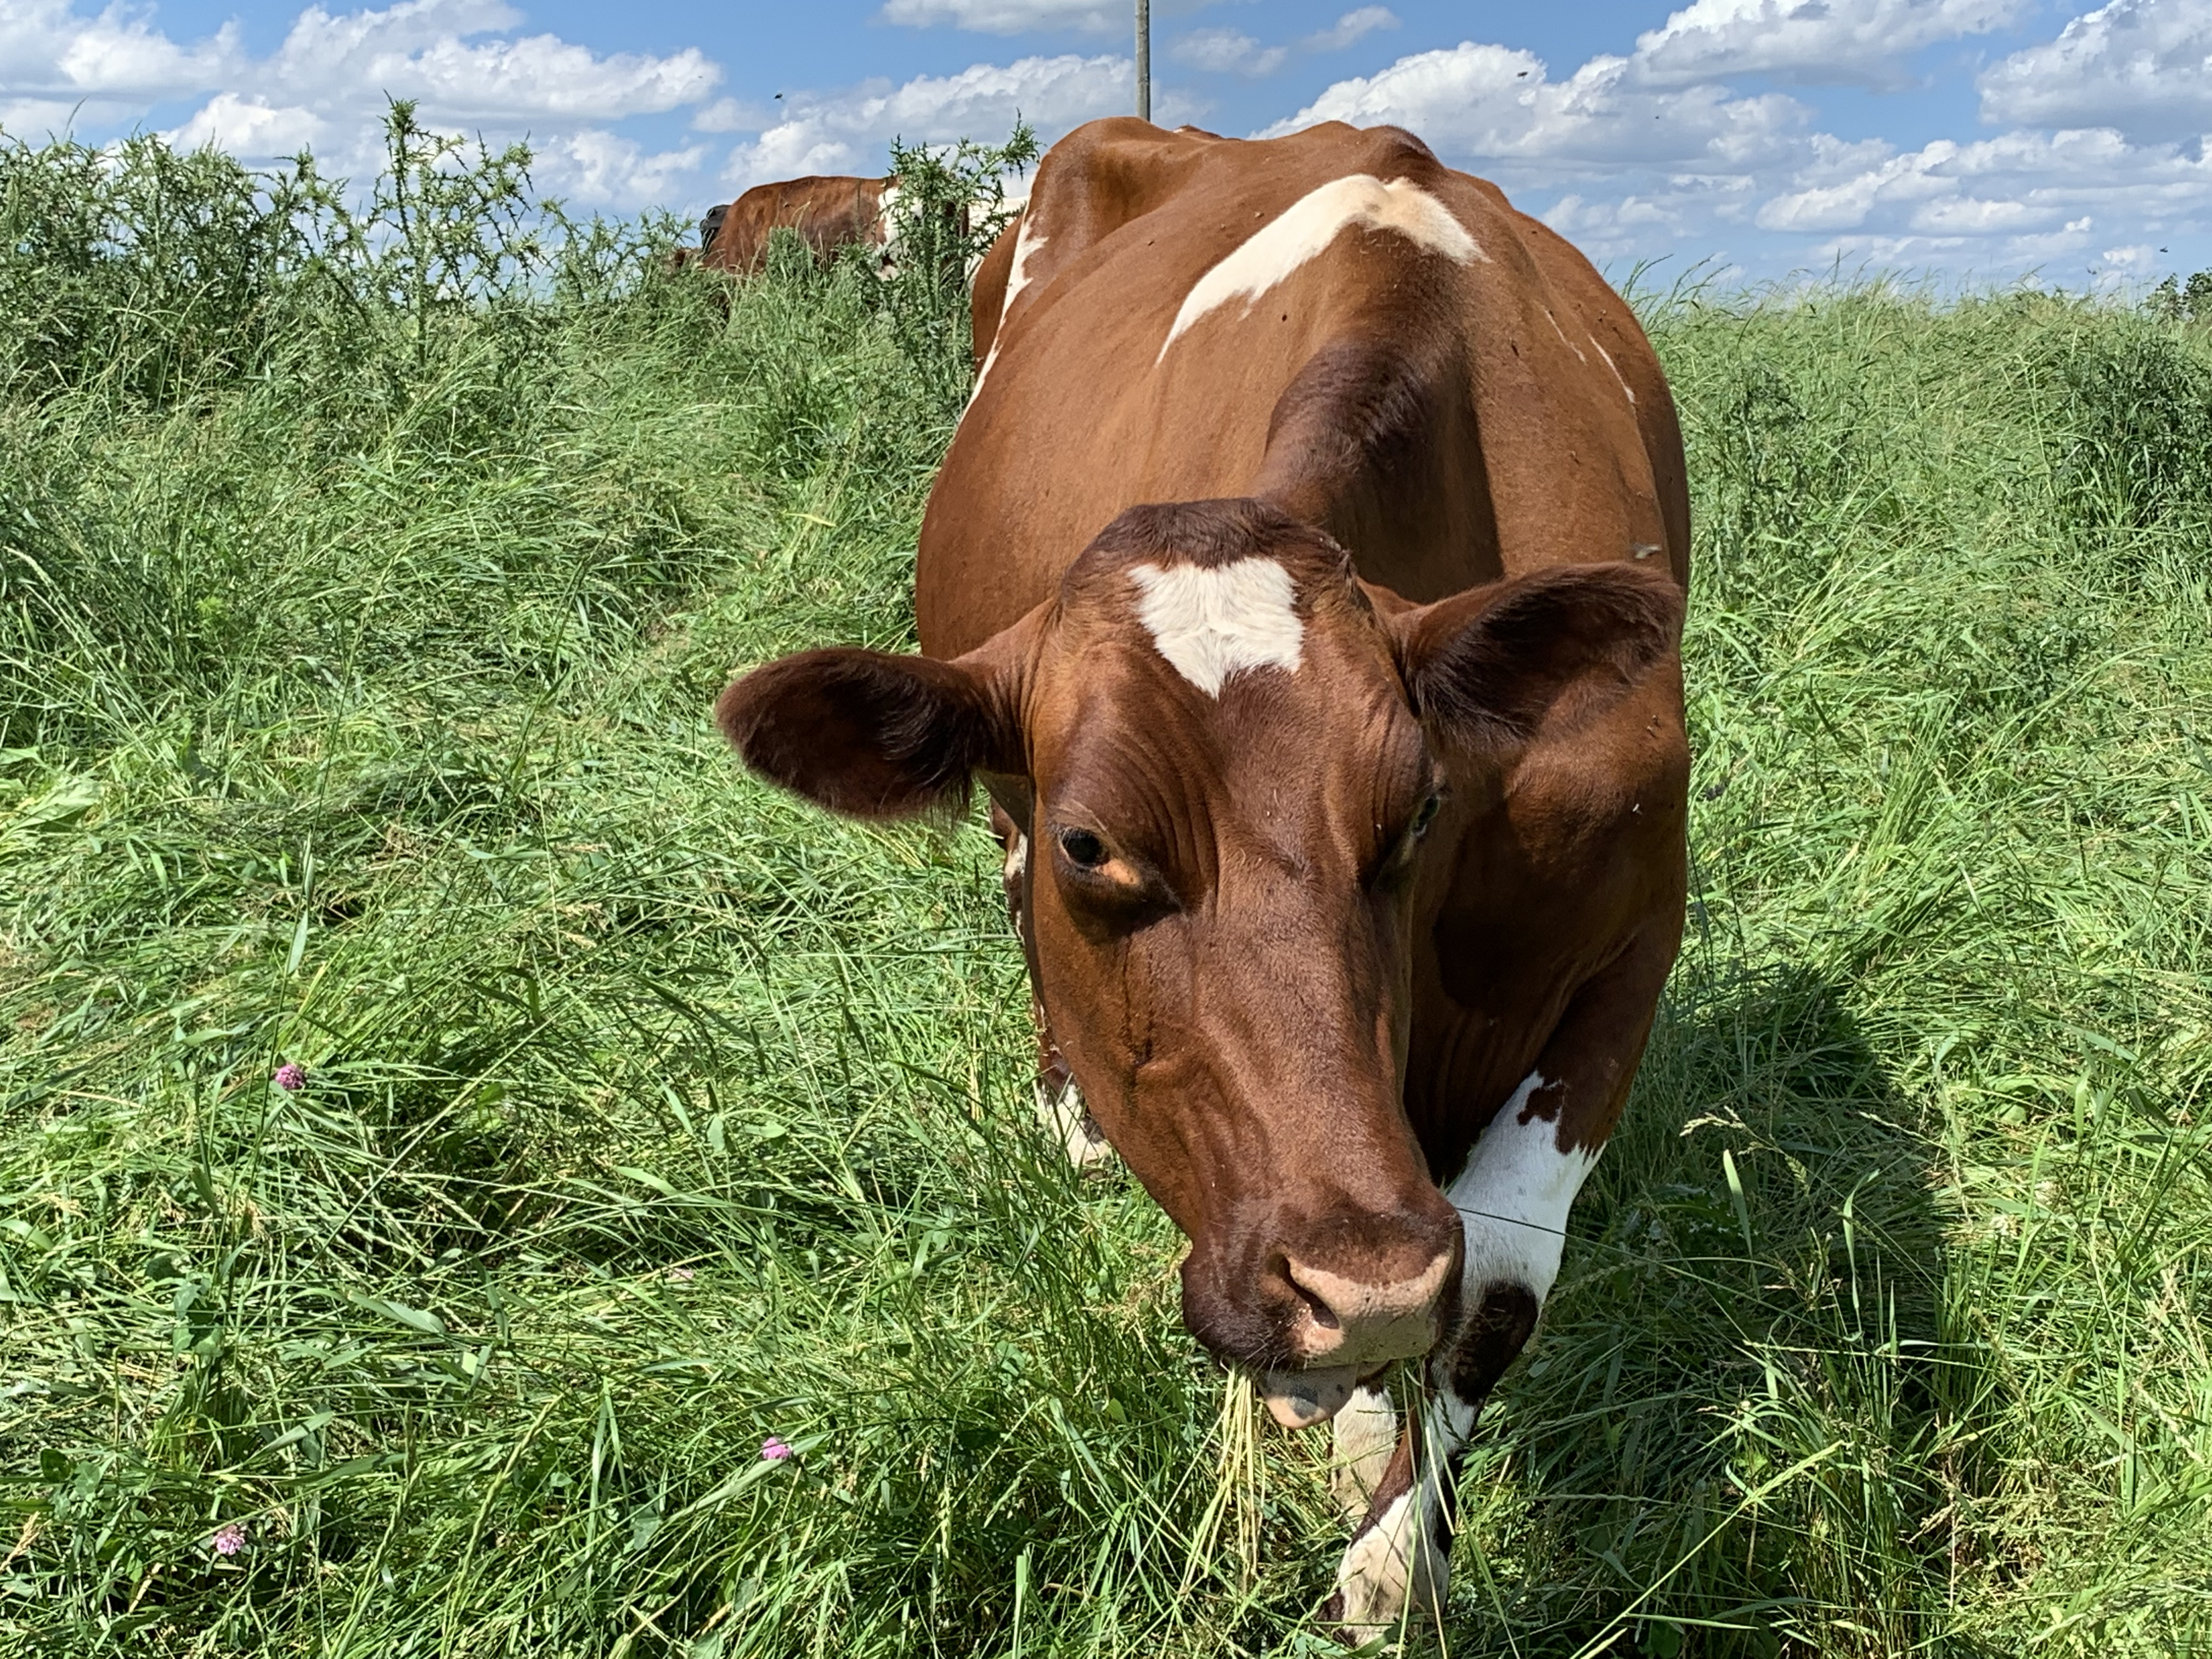 A brown cow with white markings walked through long green grass to examine the photographer.